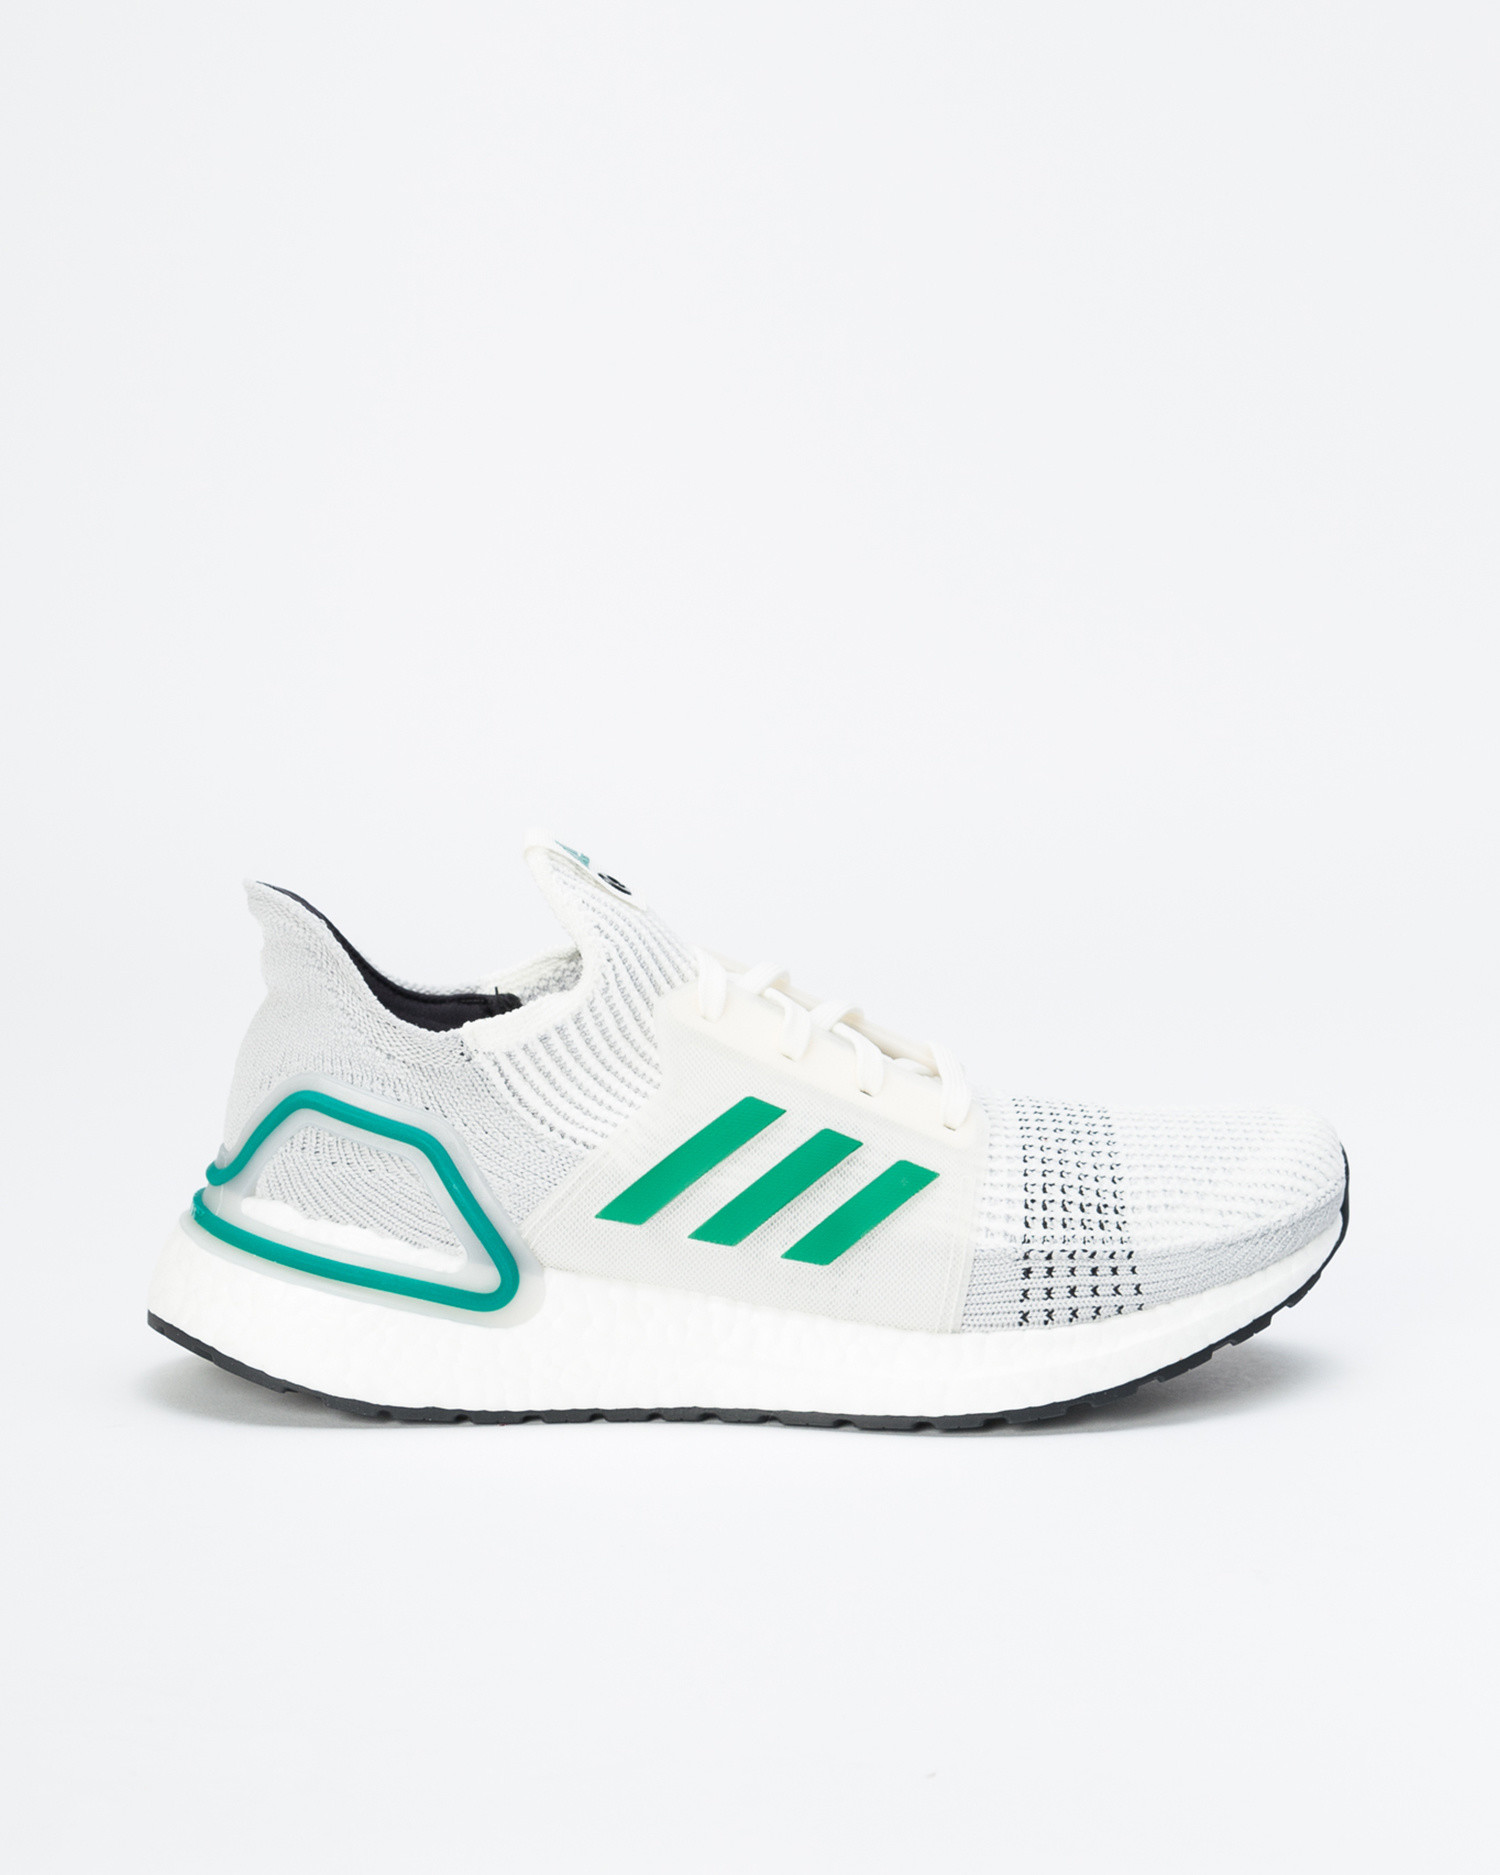 superior quality 78fc2 8f5f5 adidas Consortium Ultraboost 19 White/Green